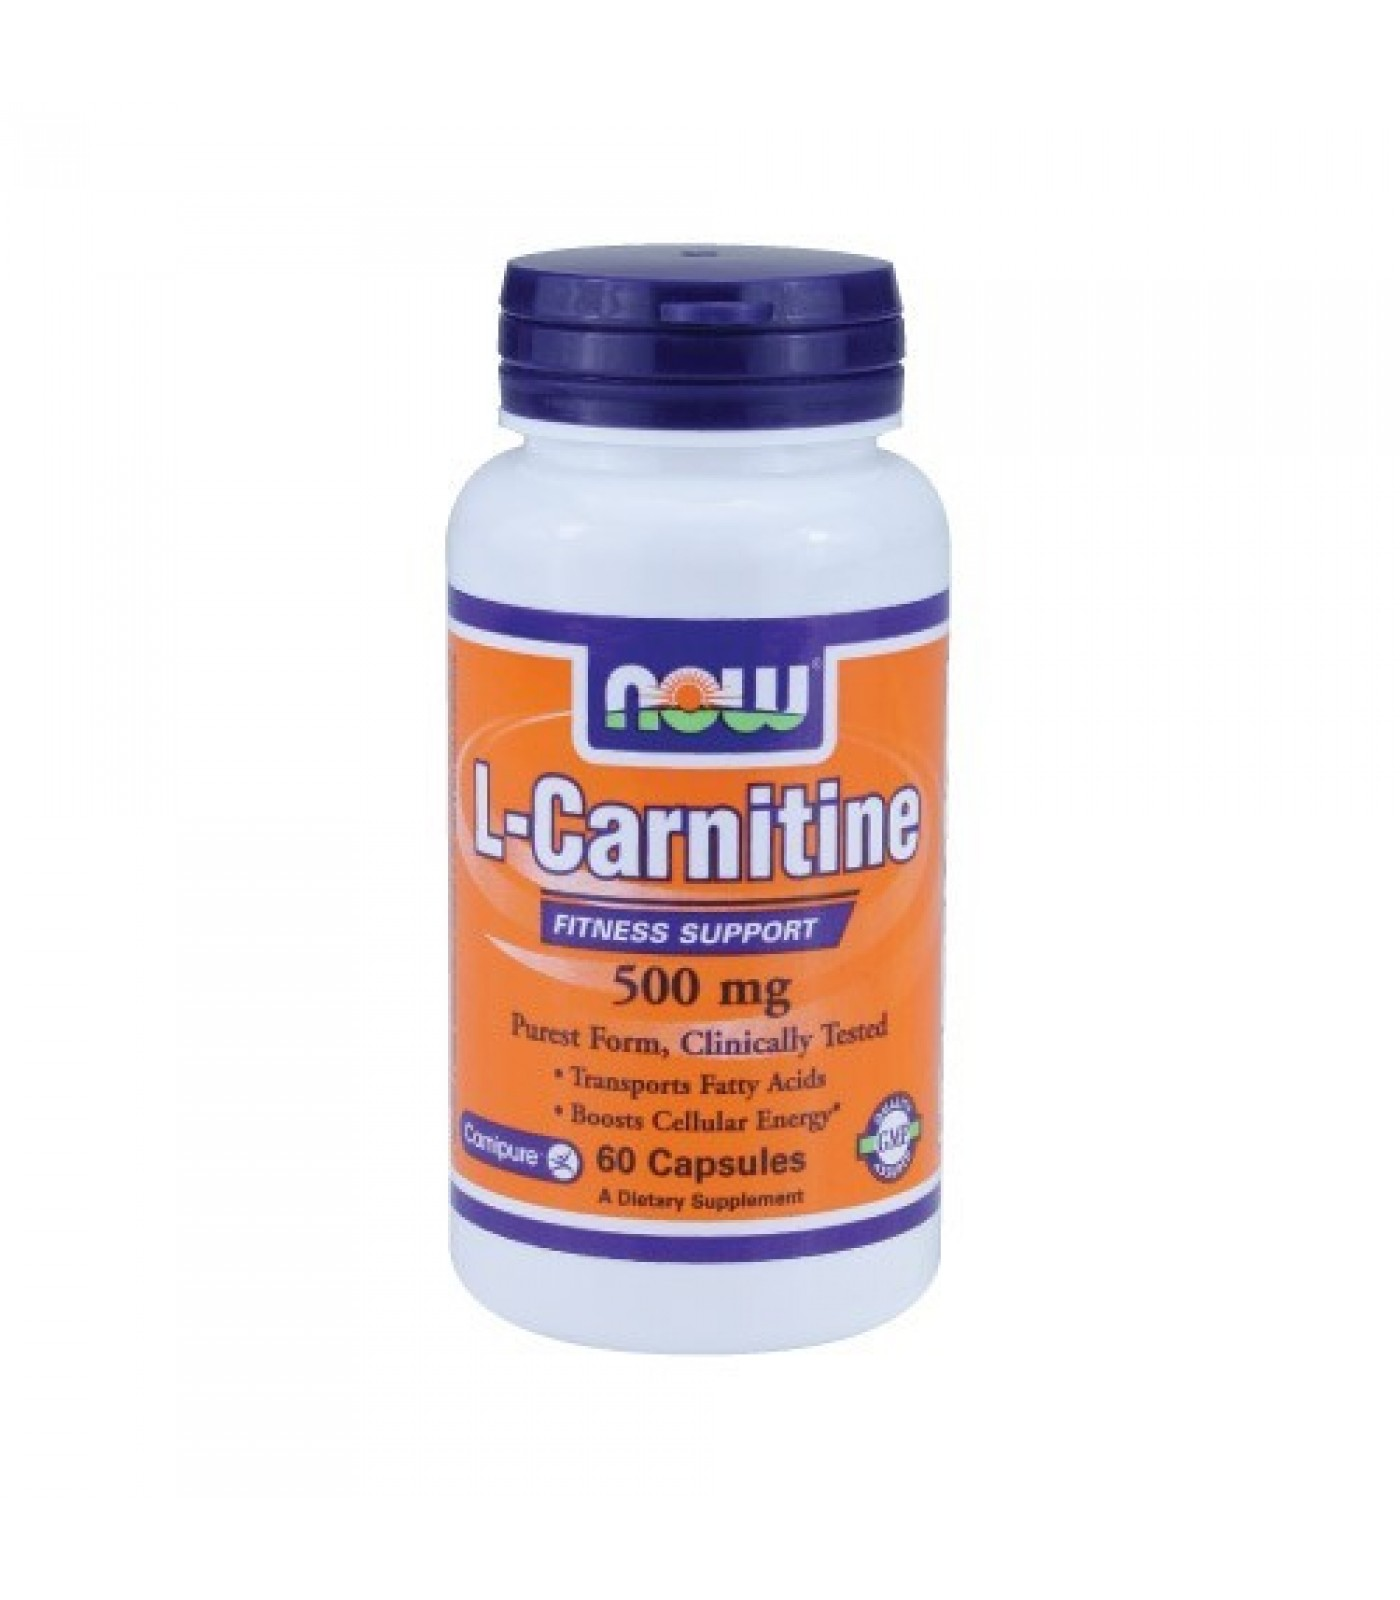 NOW - L-Carnitine 500mg. / 60 VCaps.